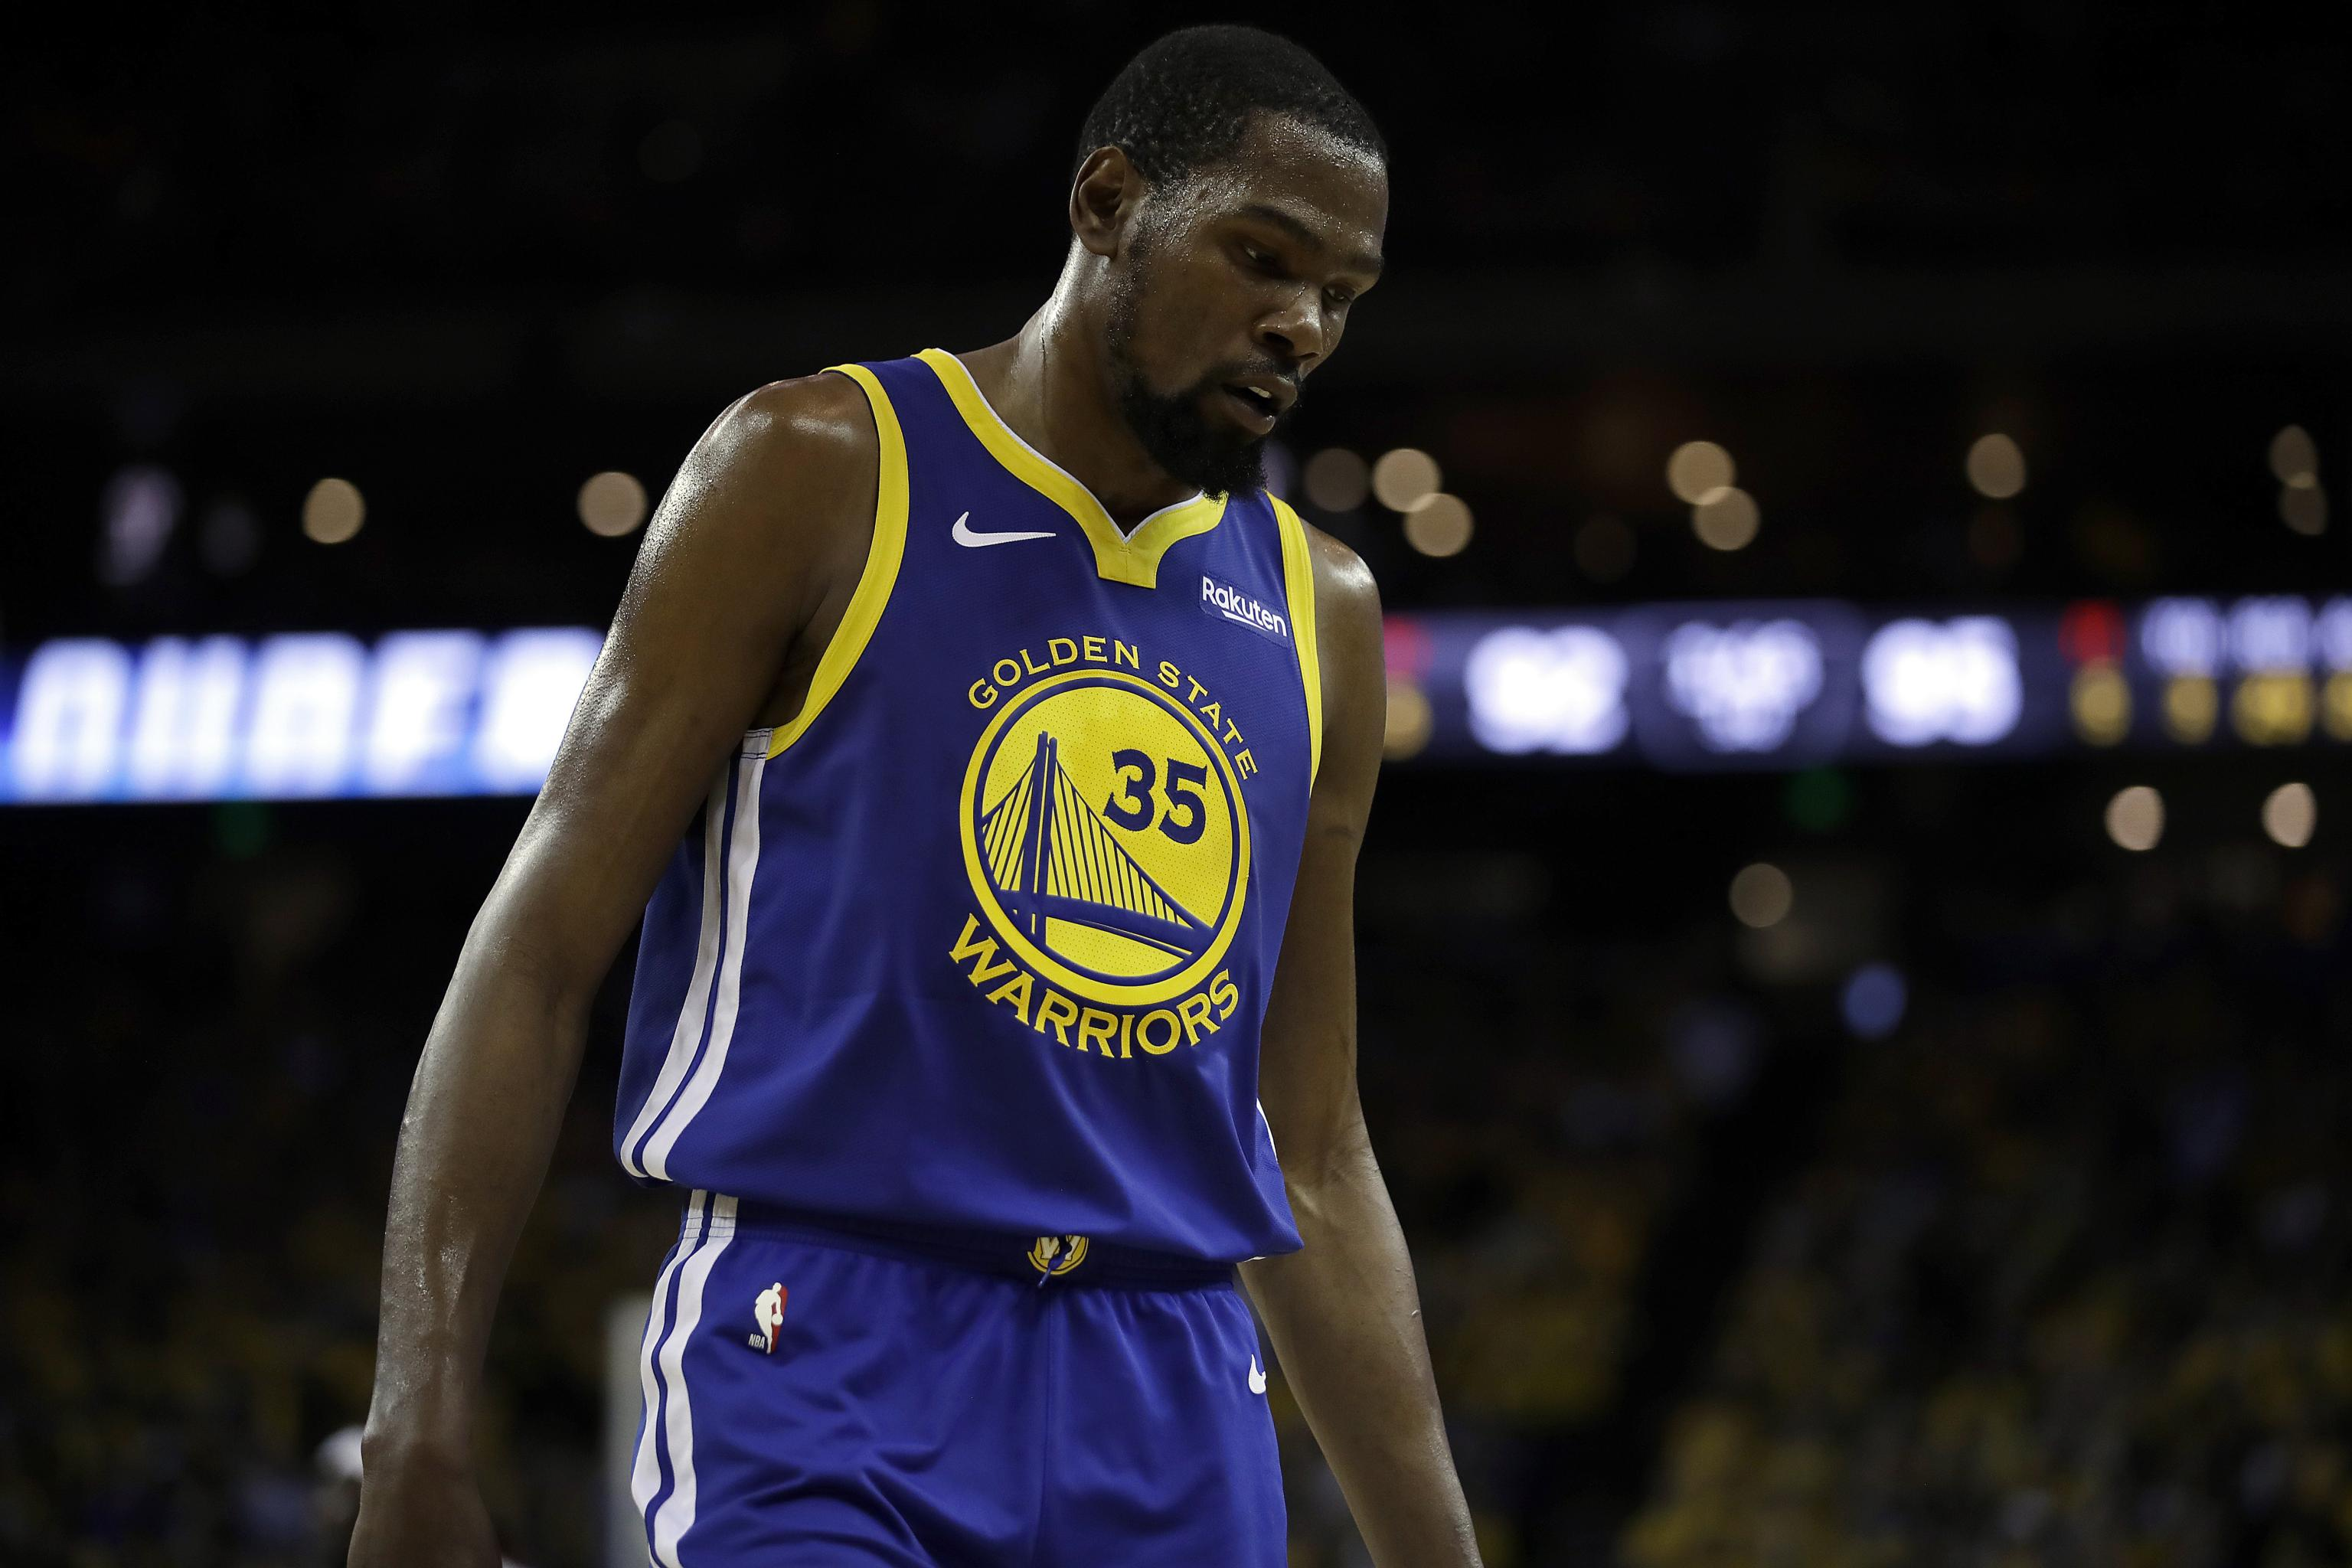 low cost 9c552 5ad72 Warriors Rumors: Kevin Durant Could Return from Injury ...